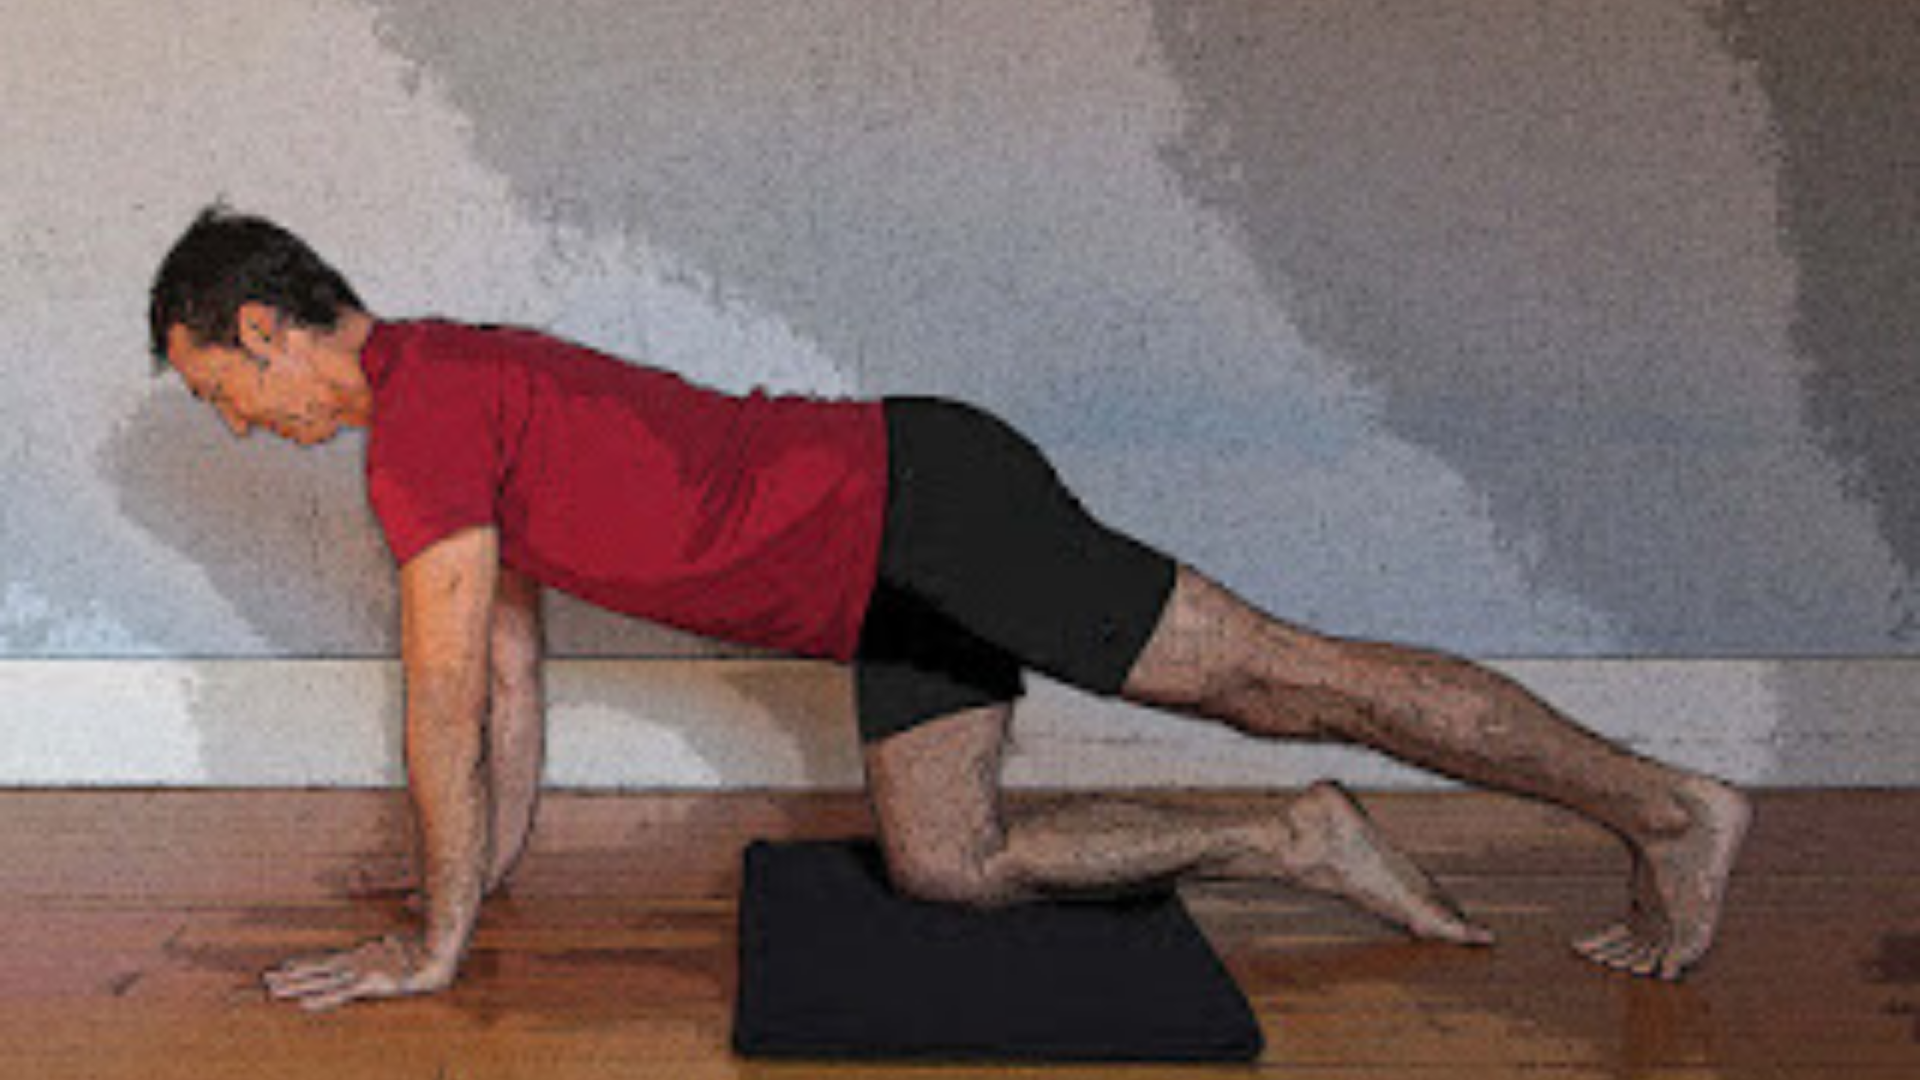 Side view of yoga teacher demonstrating how to safely exit virasana hero pose.